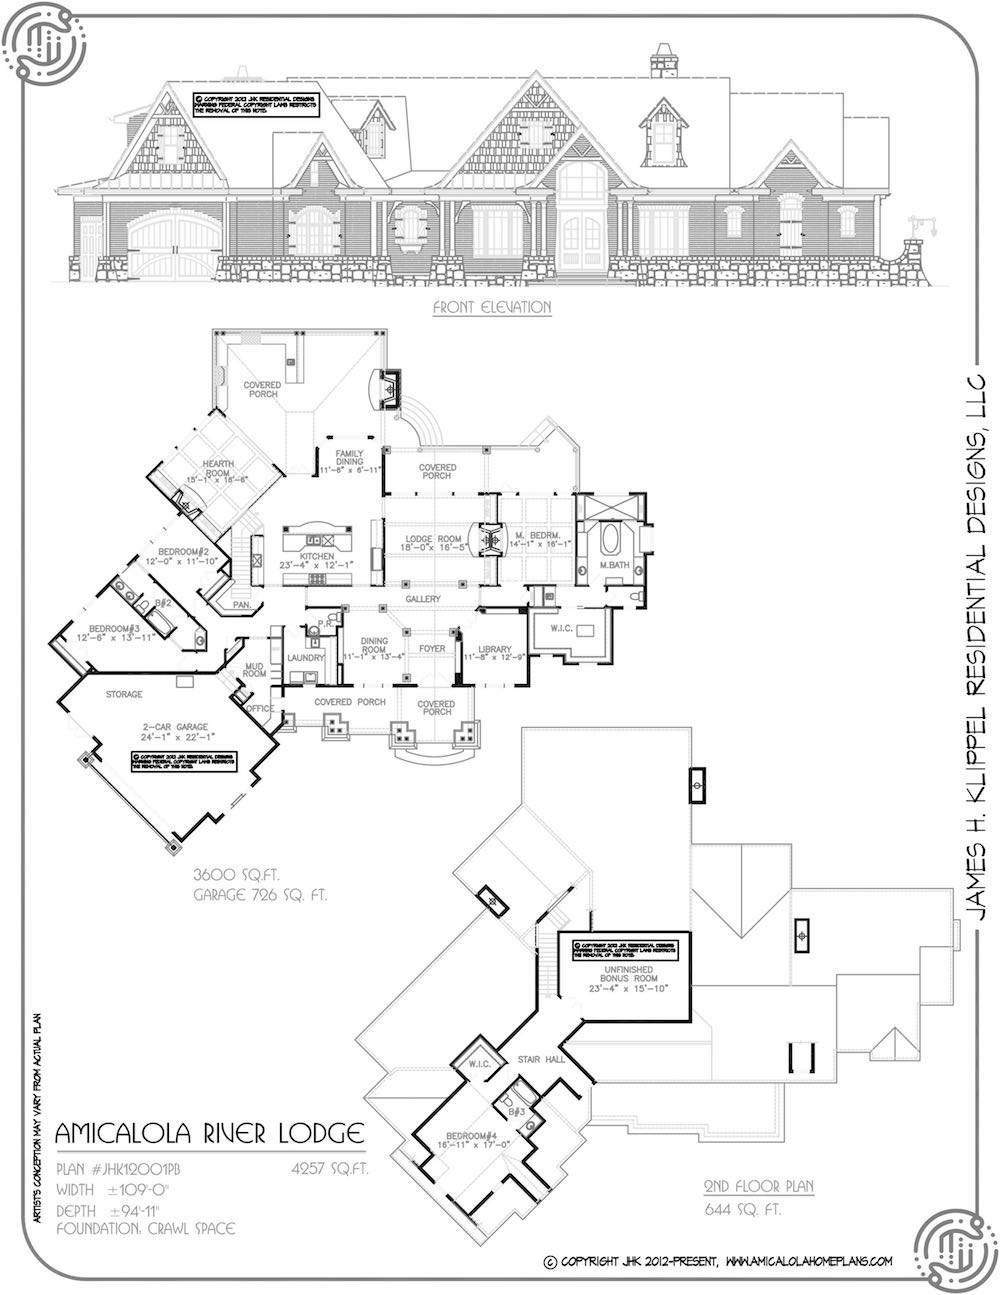 Amicalola river lodge rustic mountain homes amicalola for River view house plans